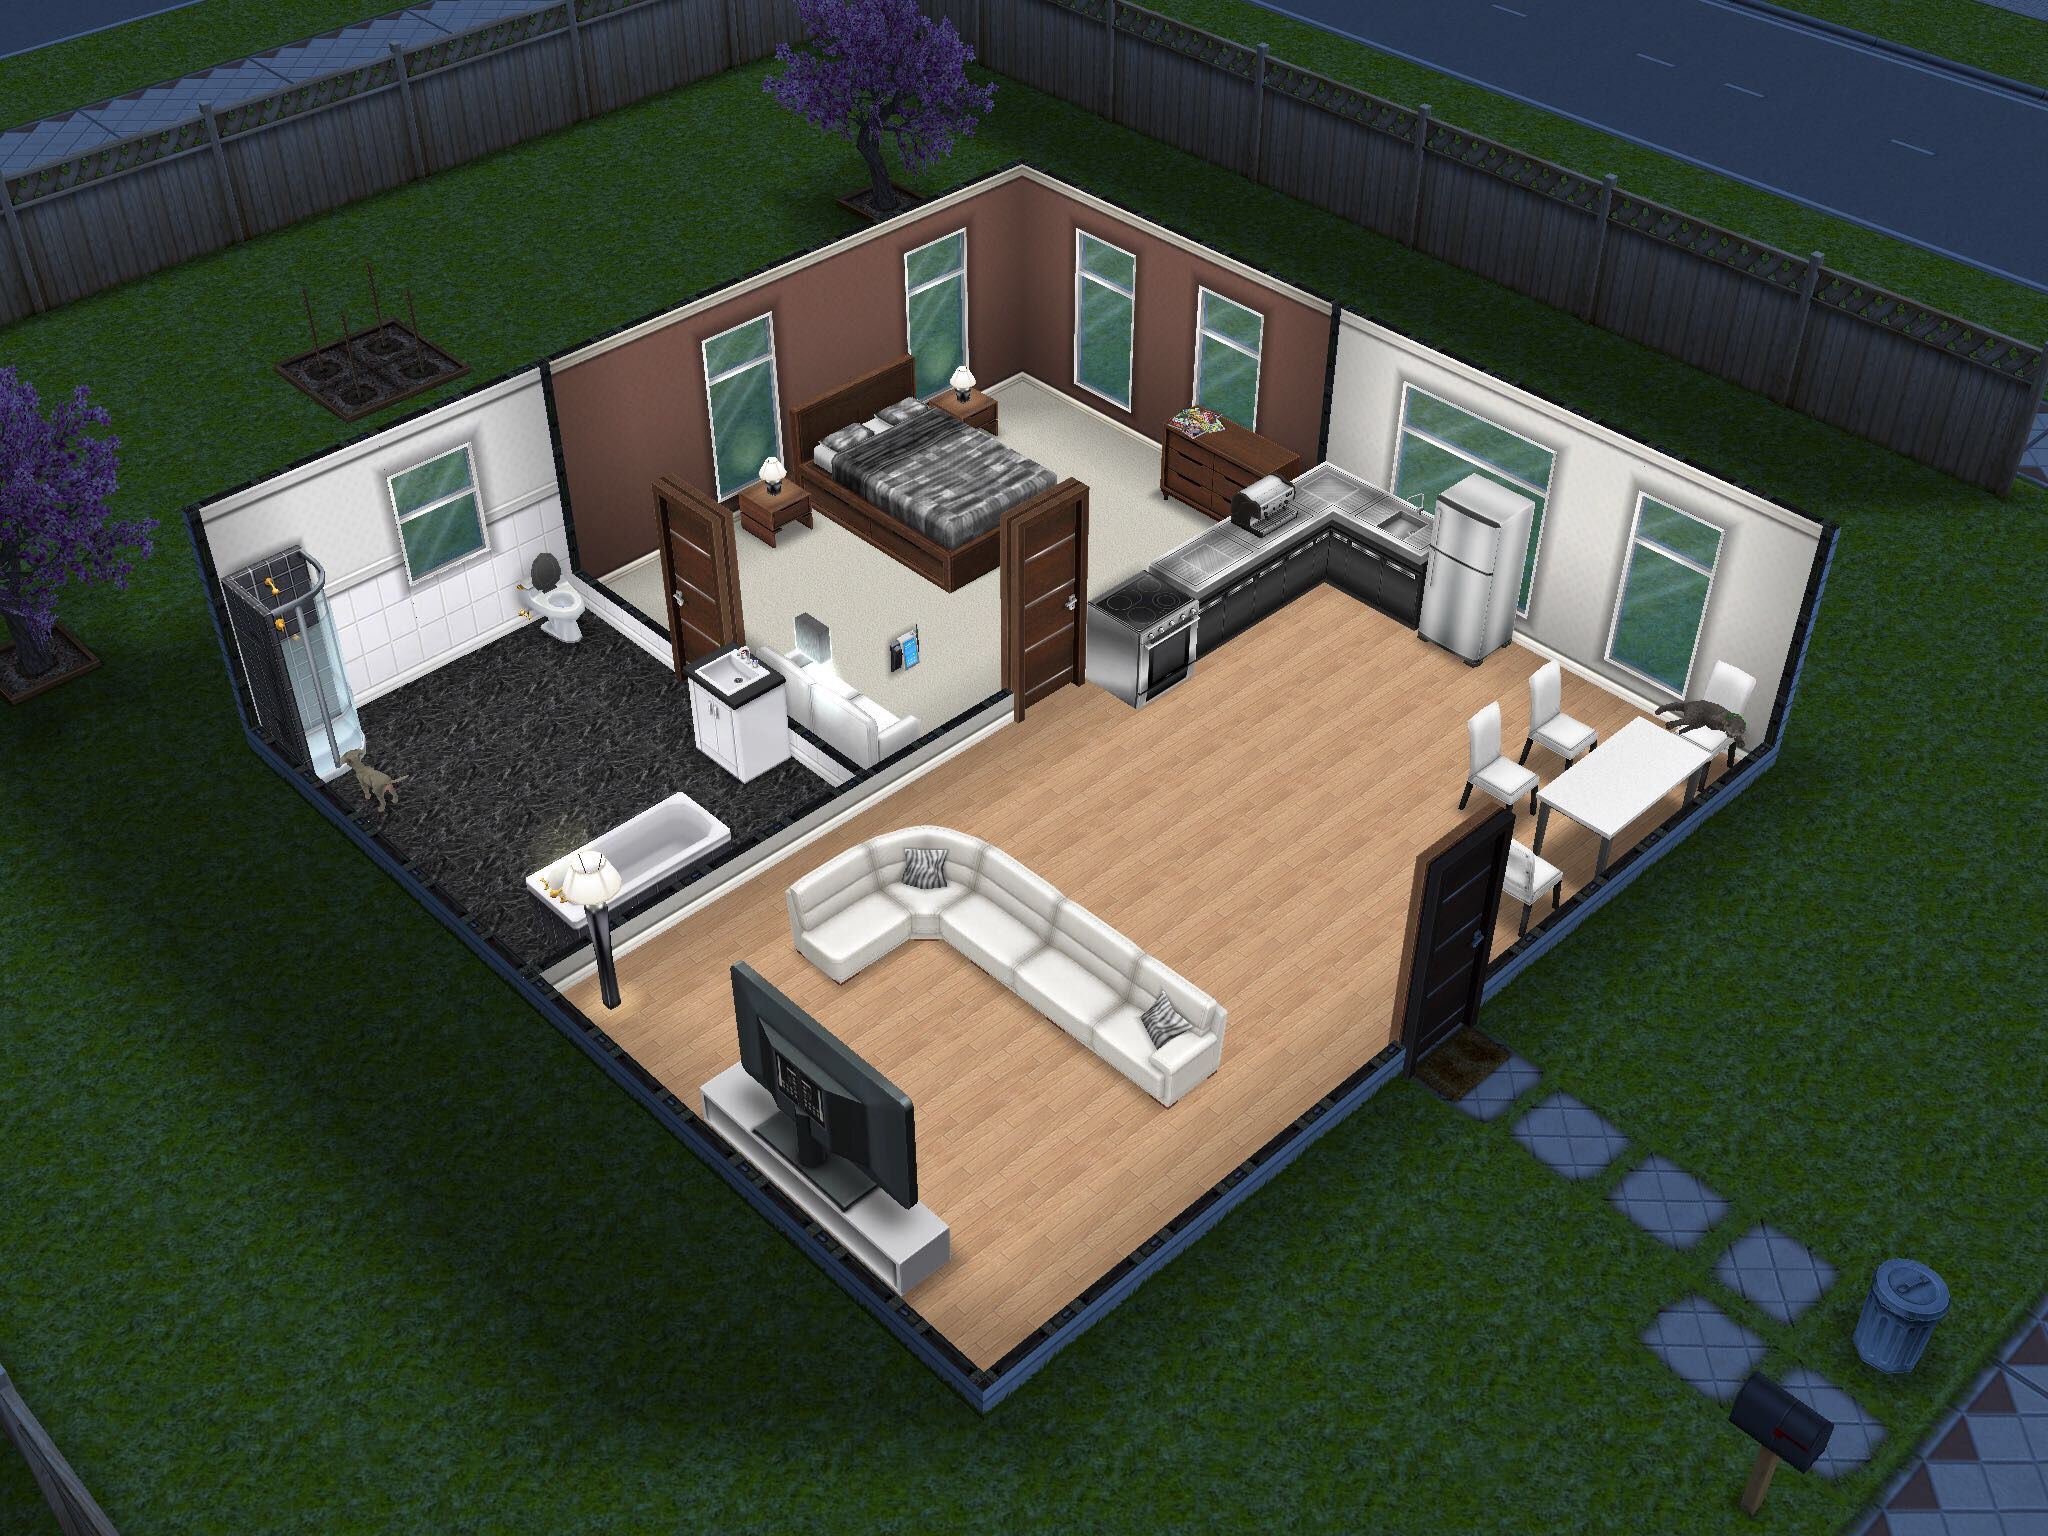 Small and simple sims freeplay house. 17 Best images about Simsfreeplay house ideas on Pinterest   The